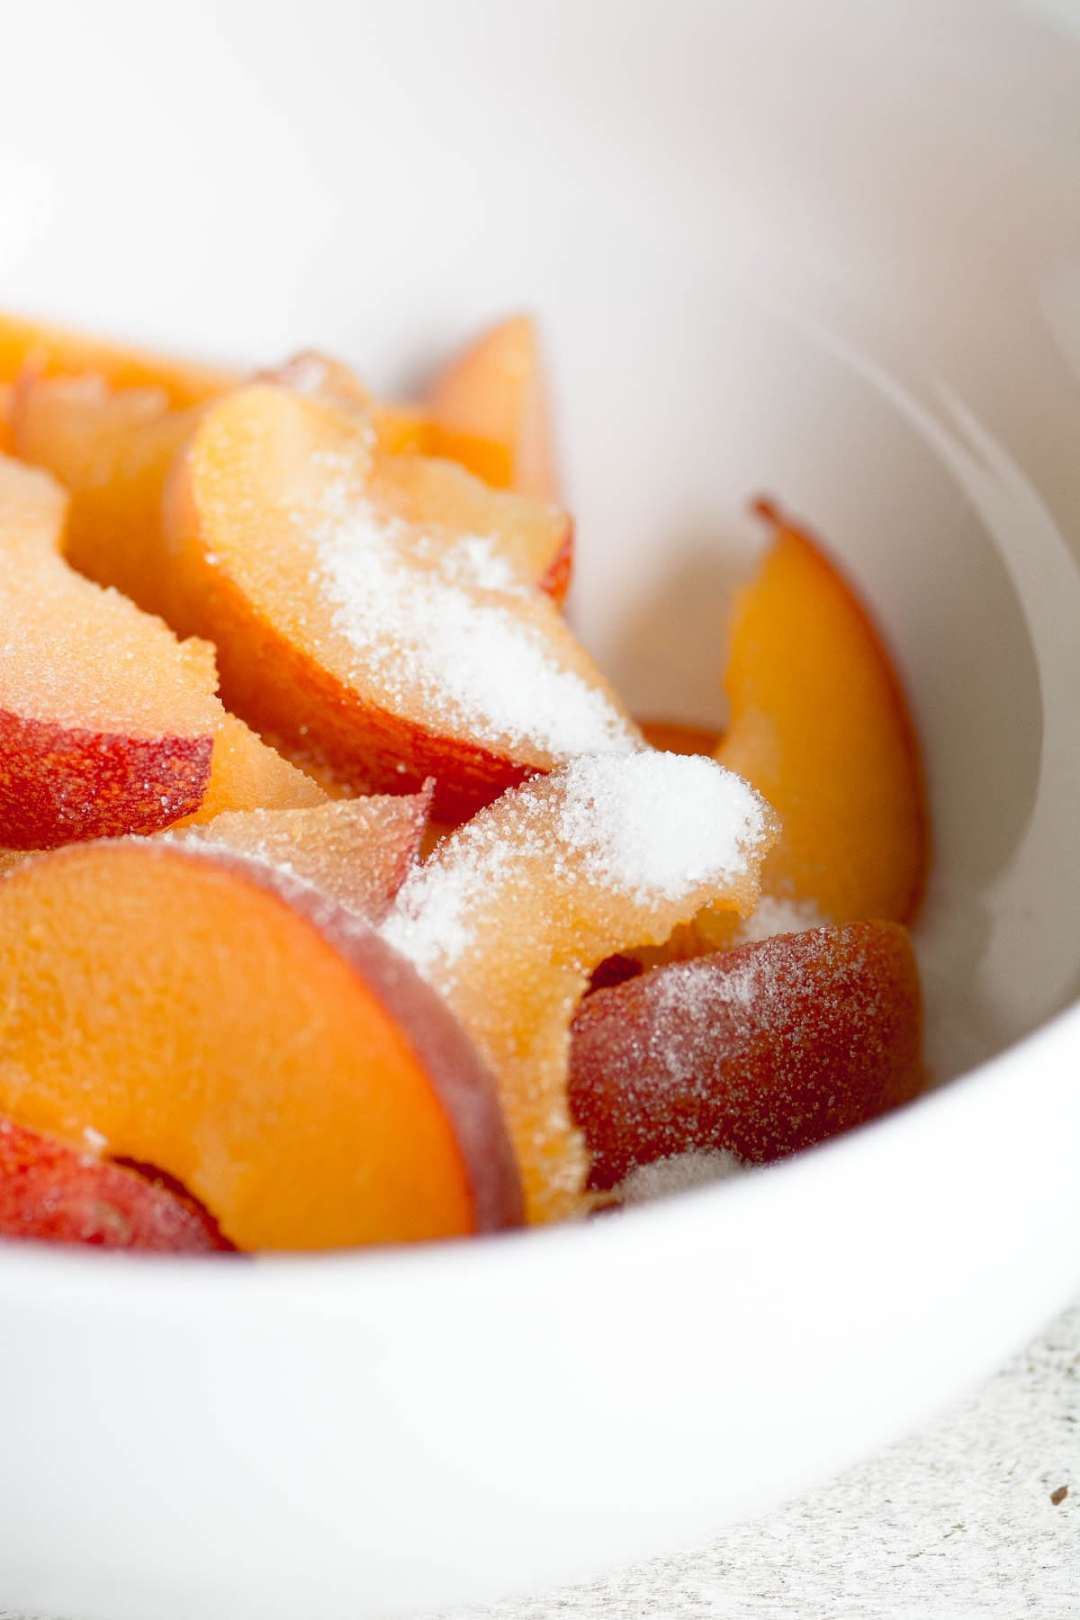 Macerating peaches for Fresh Peach Shortcake